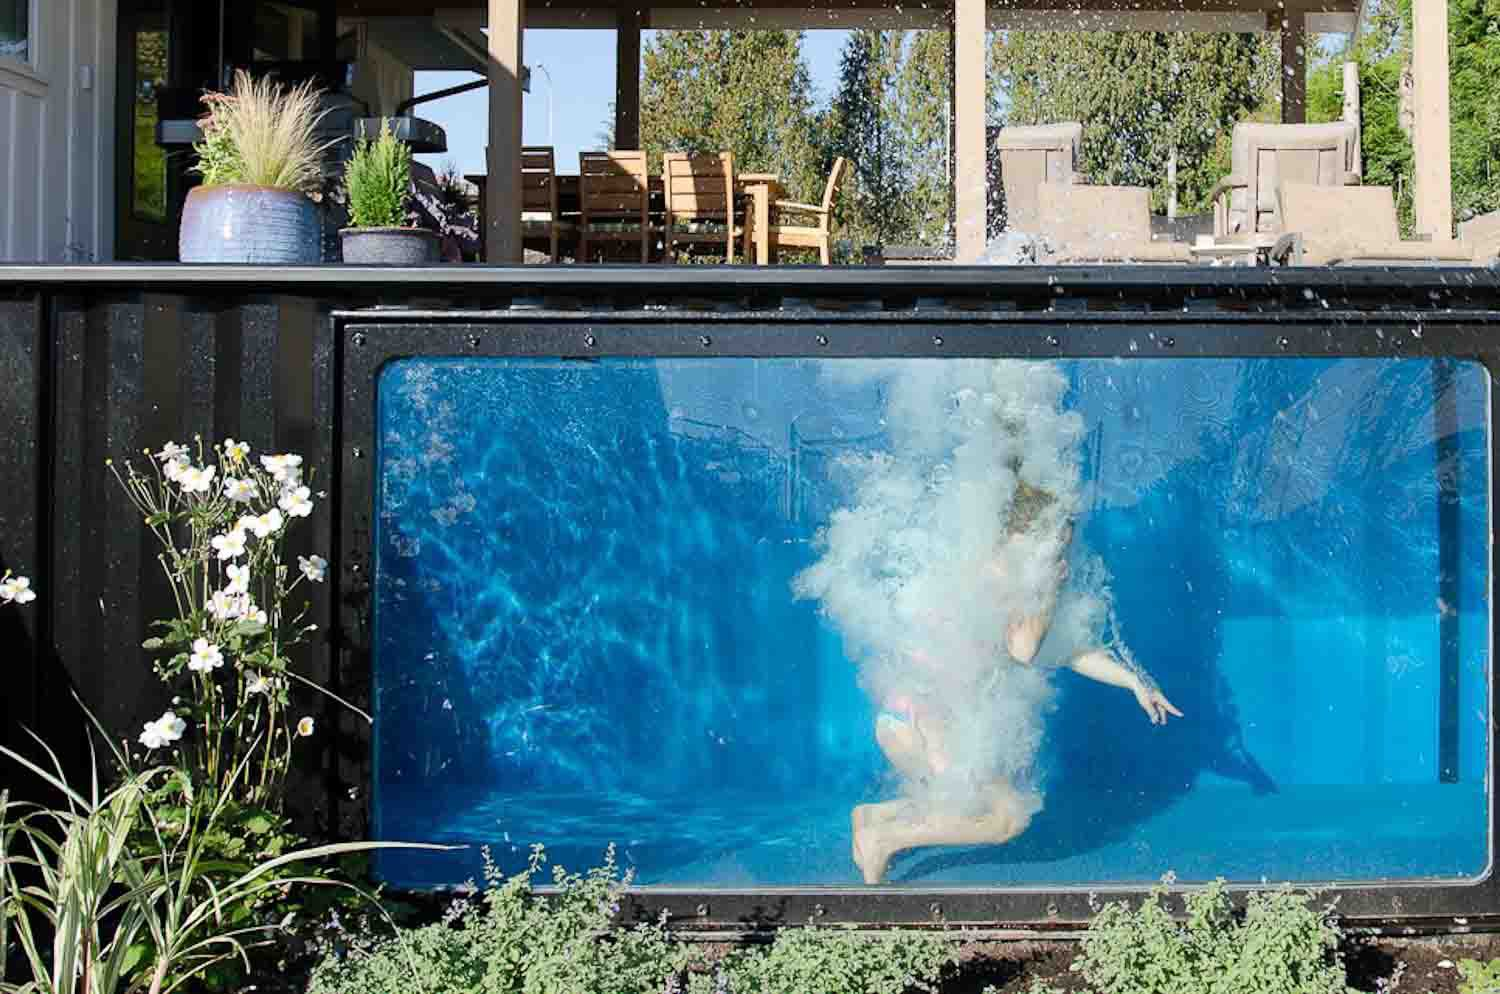 Shipping container pools by Modpools – Book of Homes